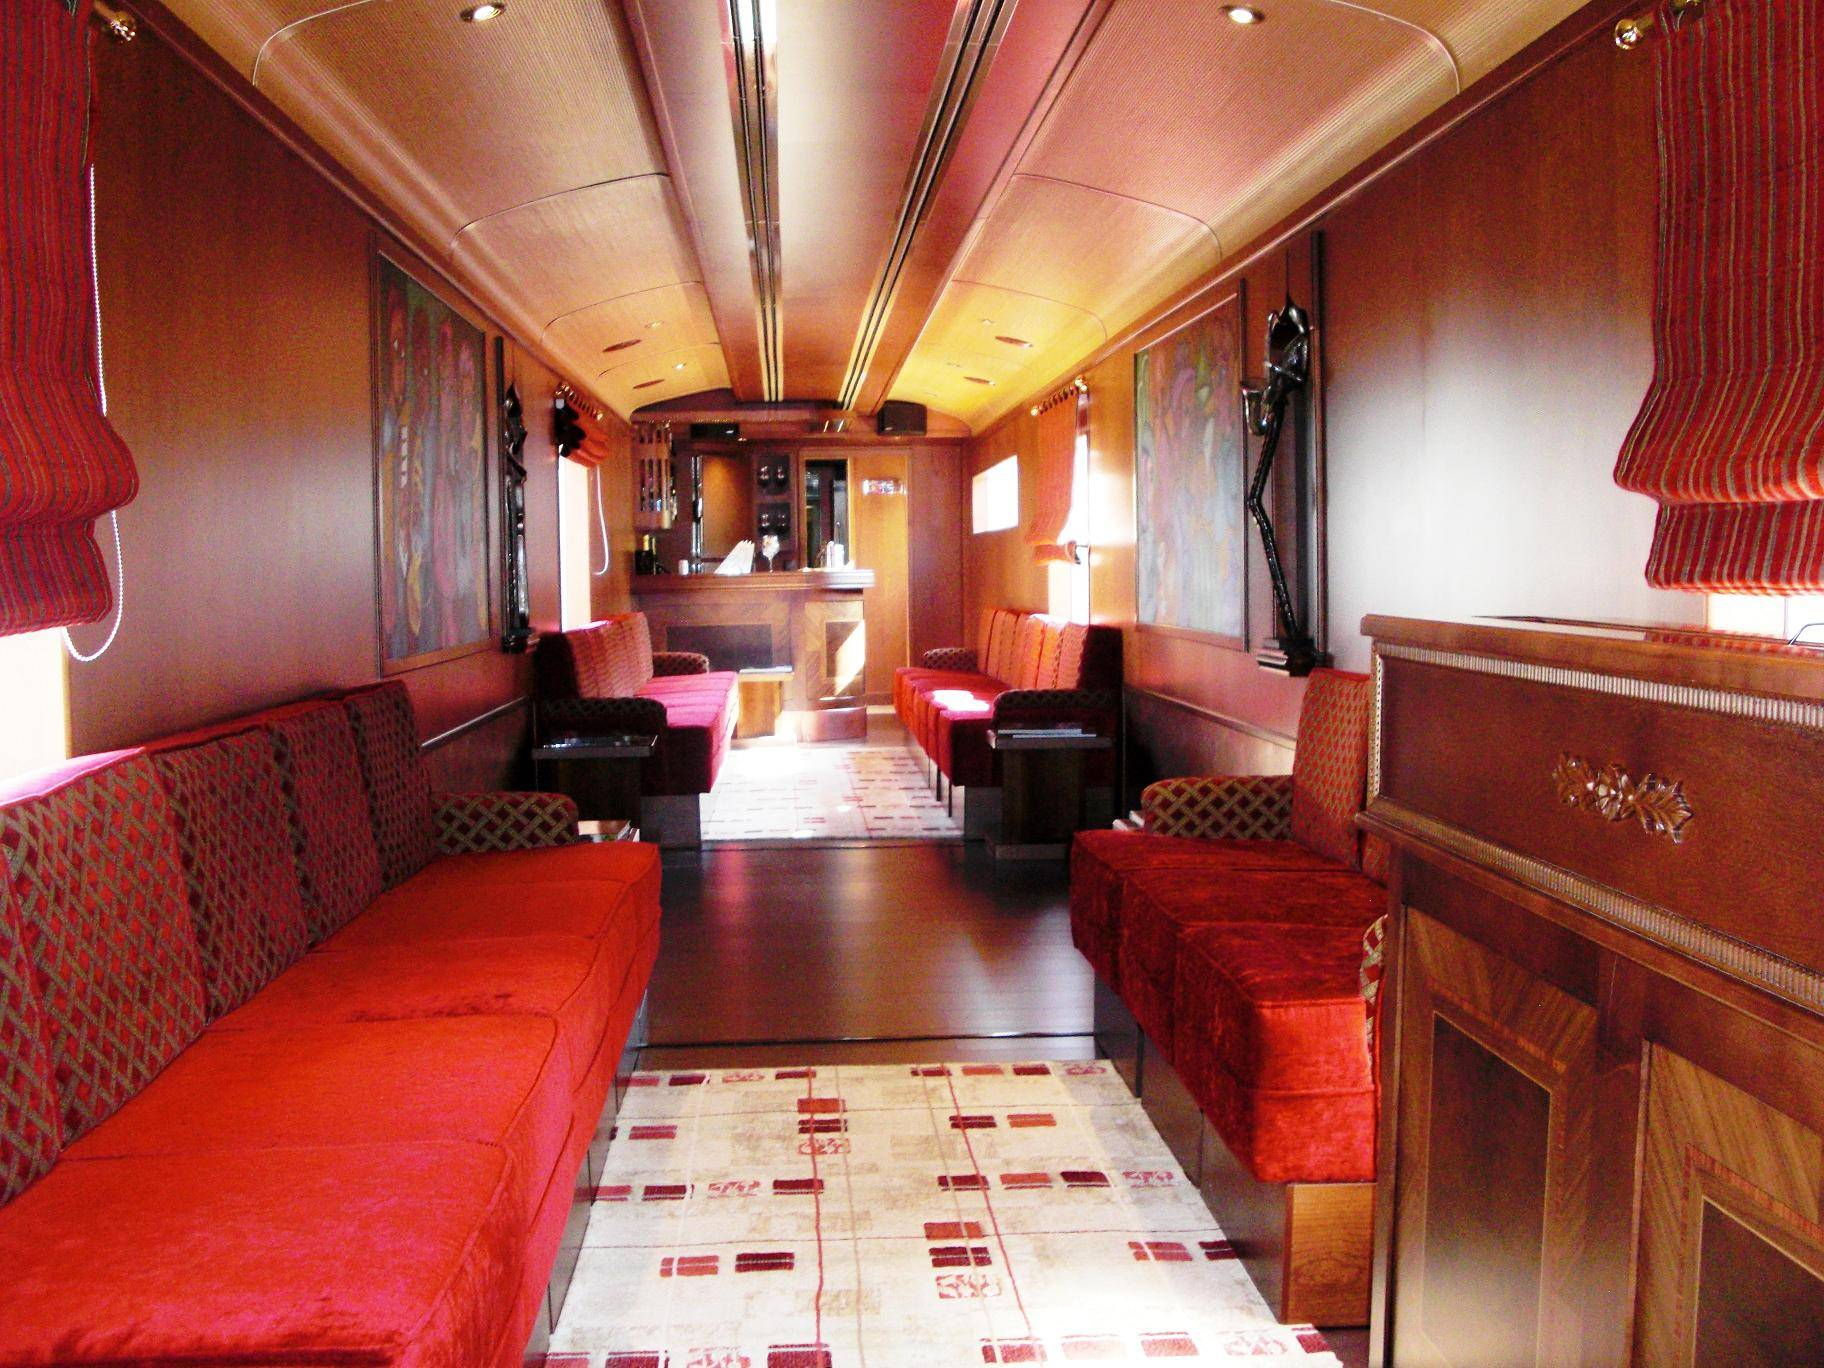 El Transcantabrico Spain Luxury Train - 2